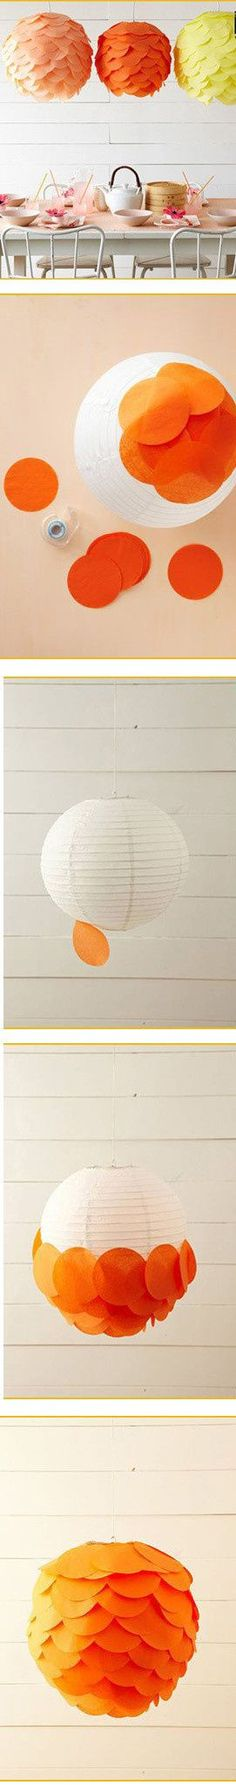 More lamp shade inspo Diy Paper Lanterns – Lets make it colorful....15 Creative Diy Paper Lanterns Ideas to Brighten Your Home #diyCraft